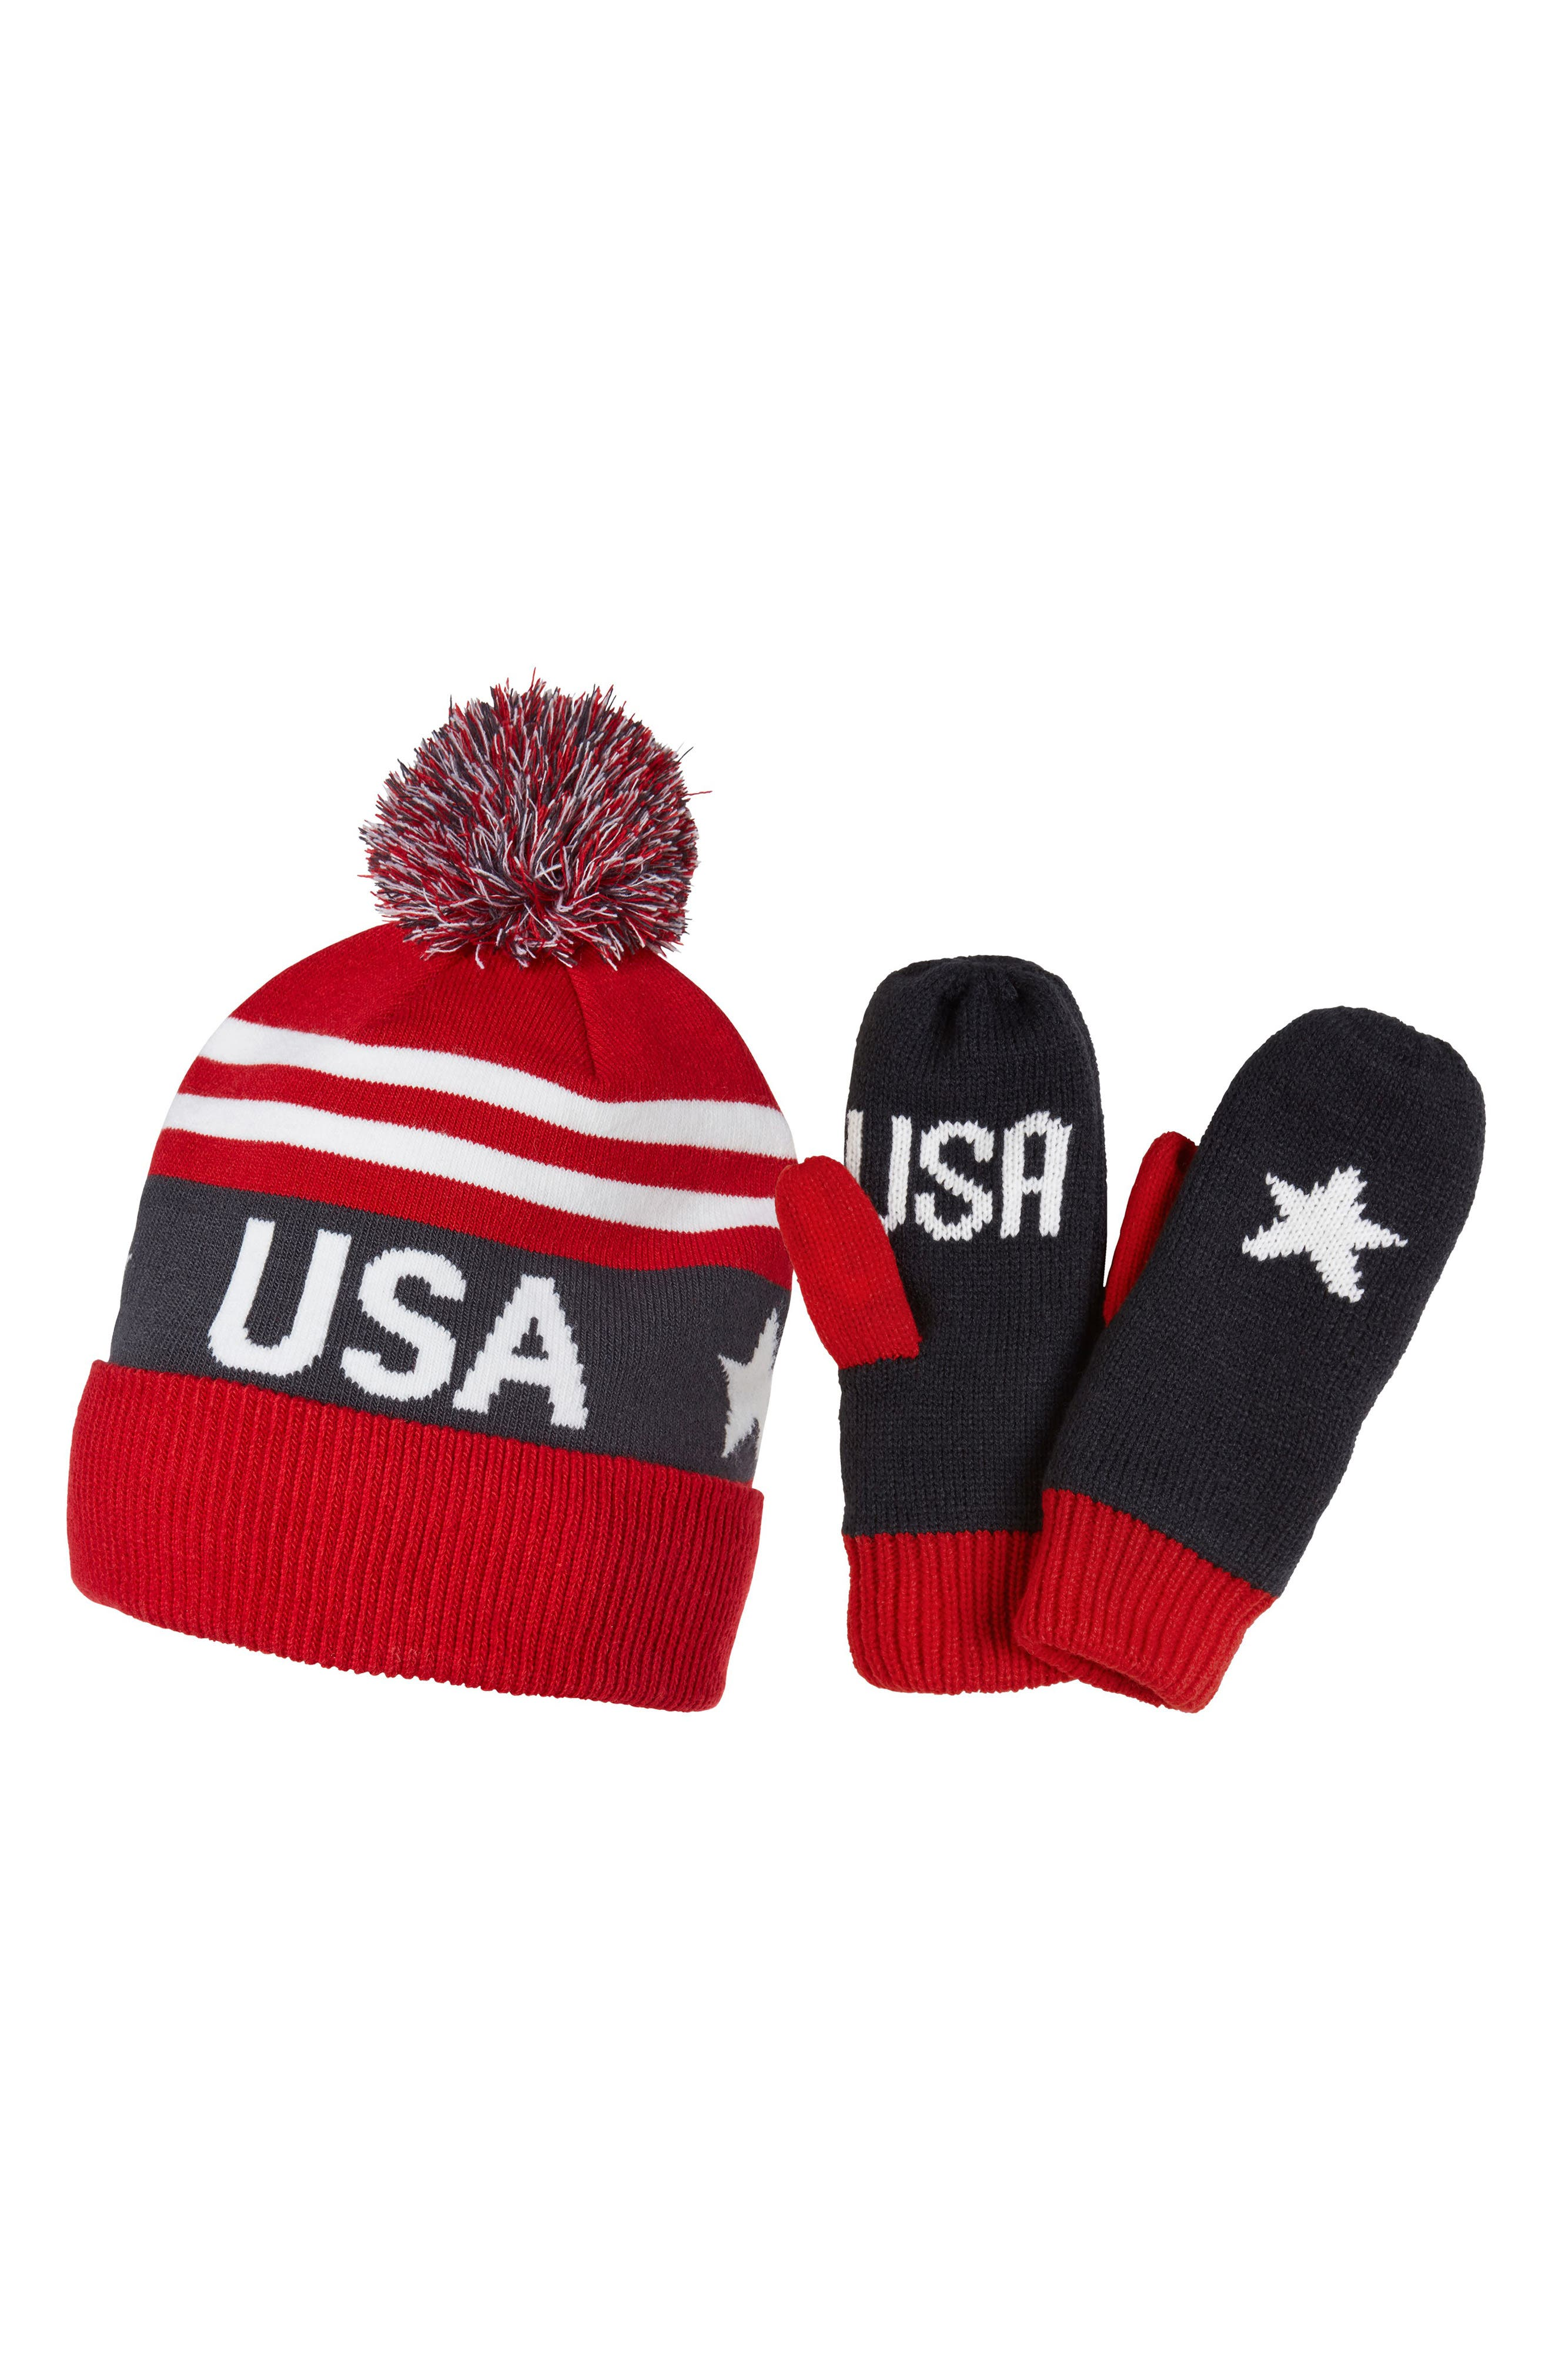 Going For Gold Knit Cap & Mittens Gift Set,                             Main thumbnail 1, color,                             Olympian Blue/ Usa